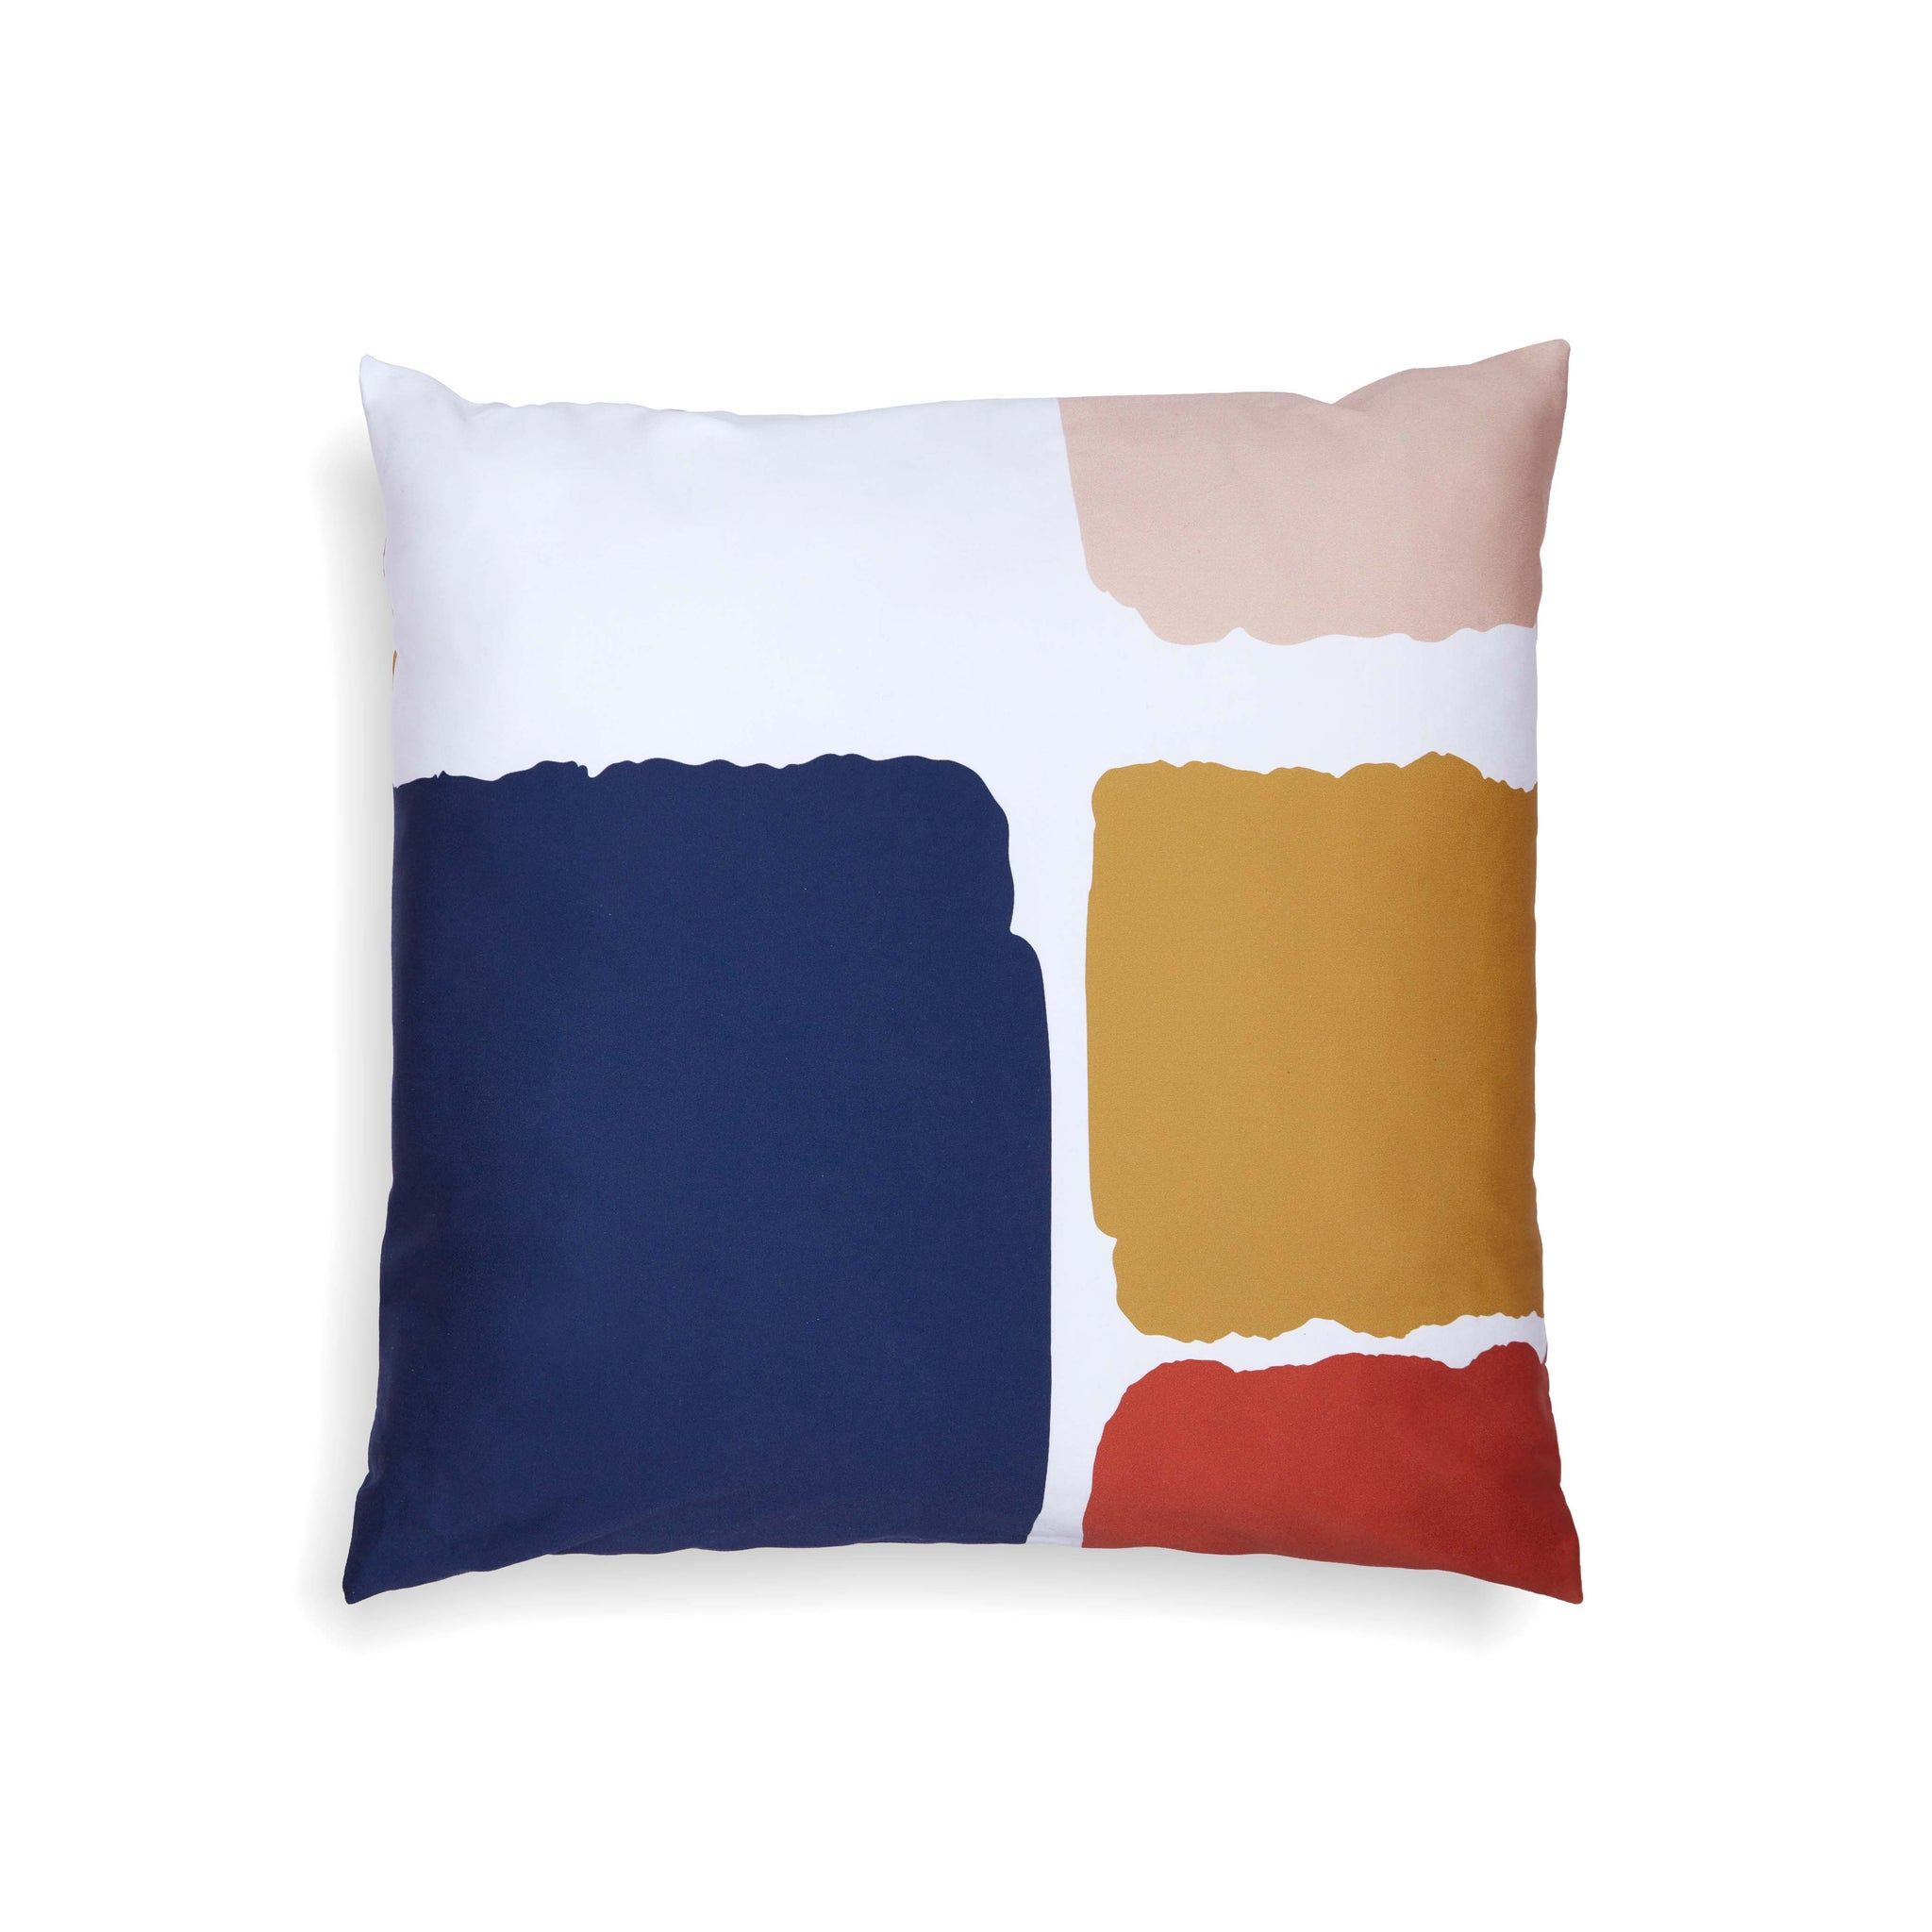 Formepiane x MONOMIO Special Edition Cushion Large